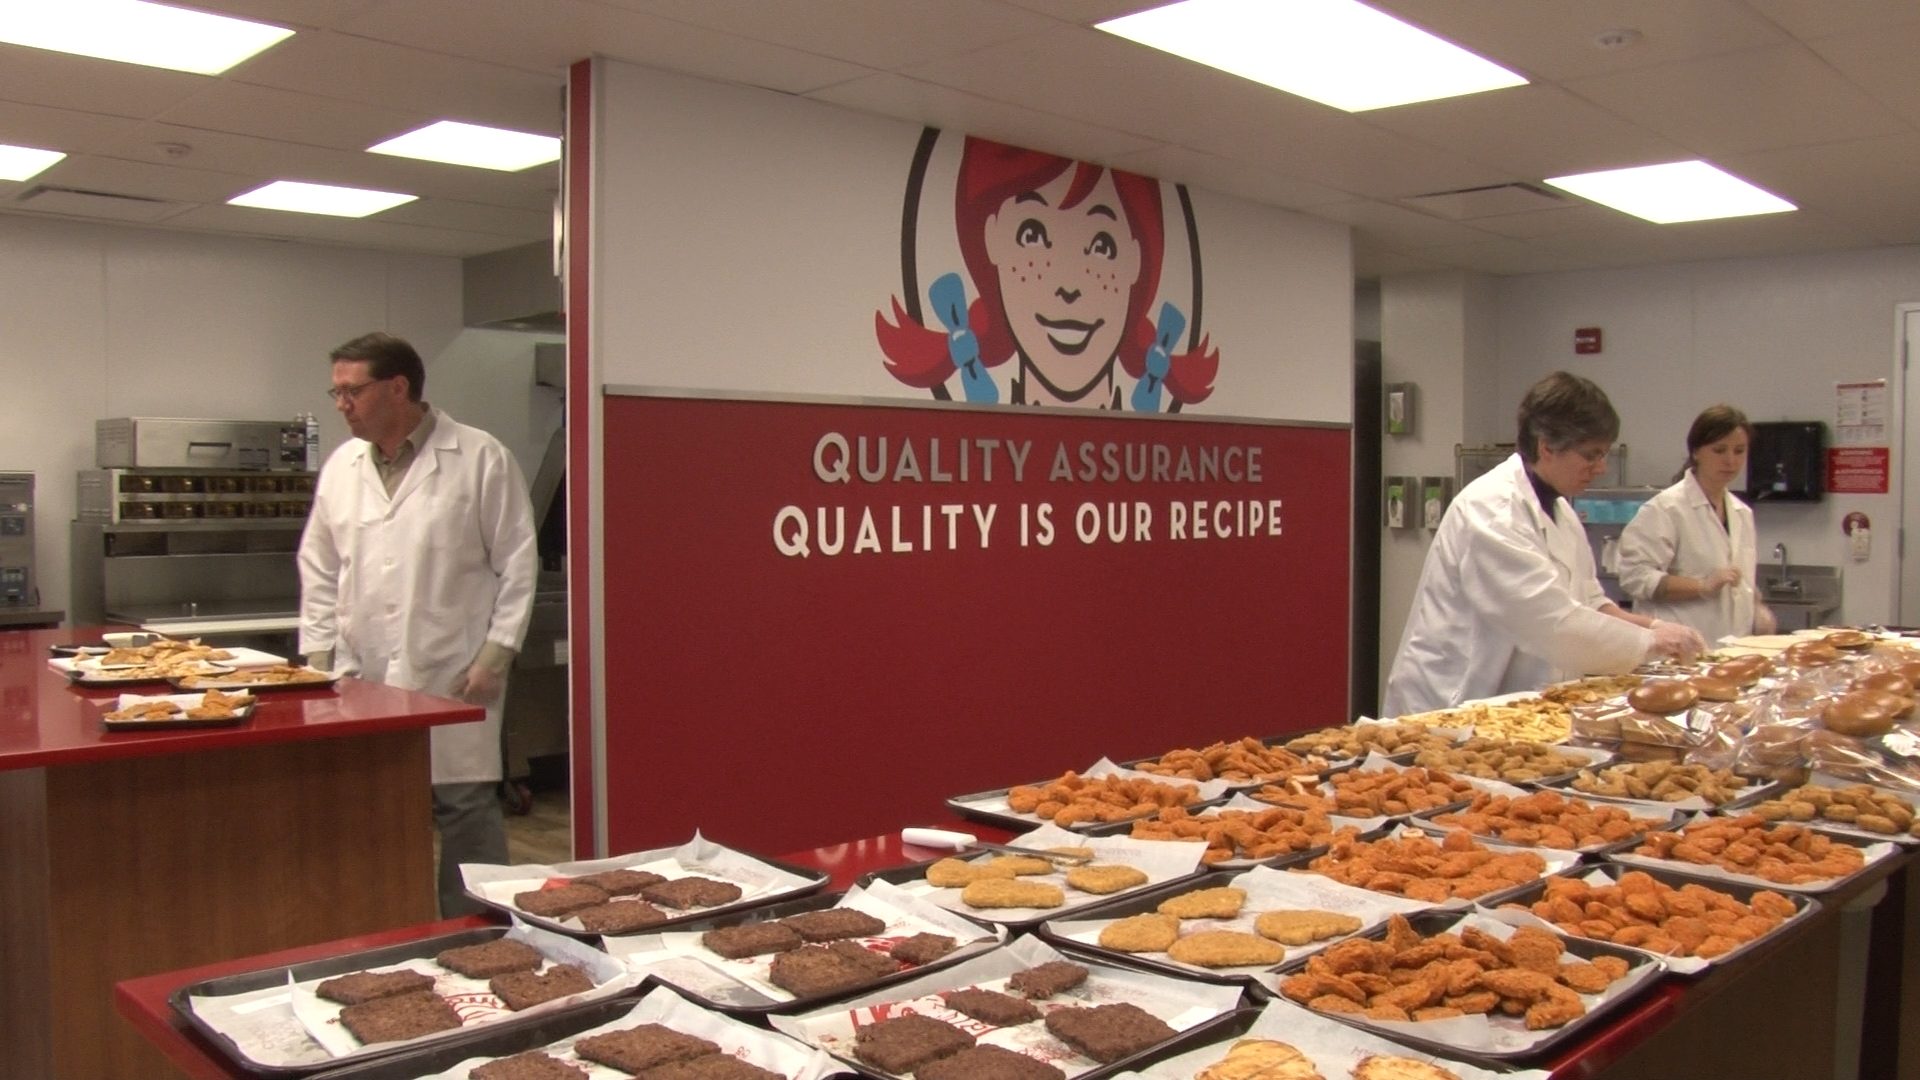 Every Friday, the Quality Assurance team at Wendy's brings together suppliers and partners from various disciplines within the company to evaluate samples to ensure the quality of Wendy's products.